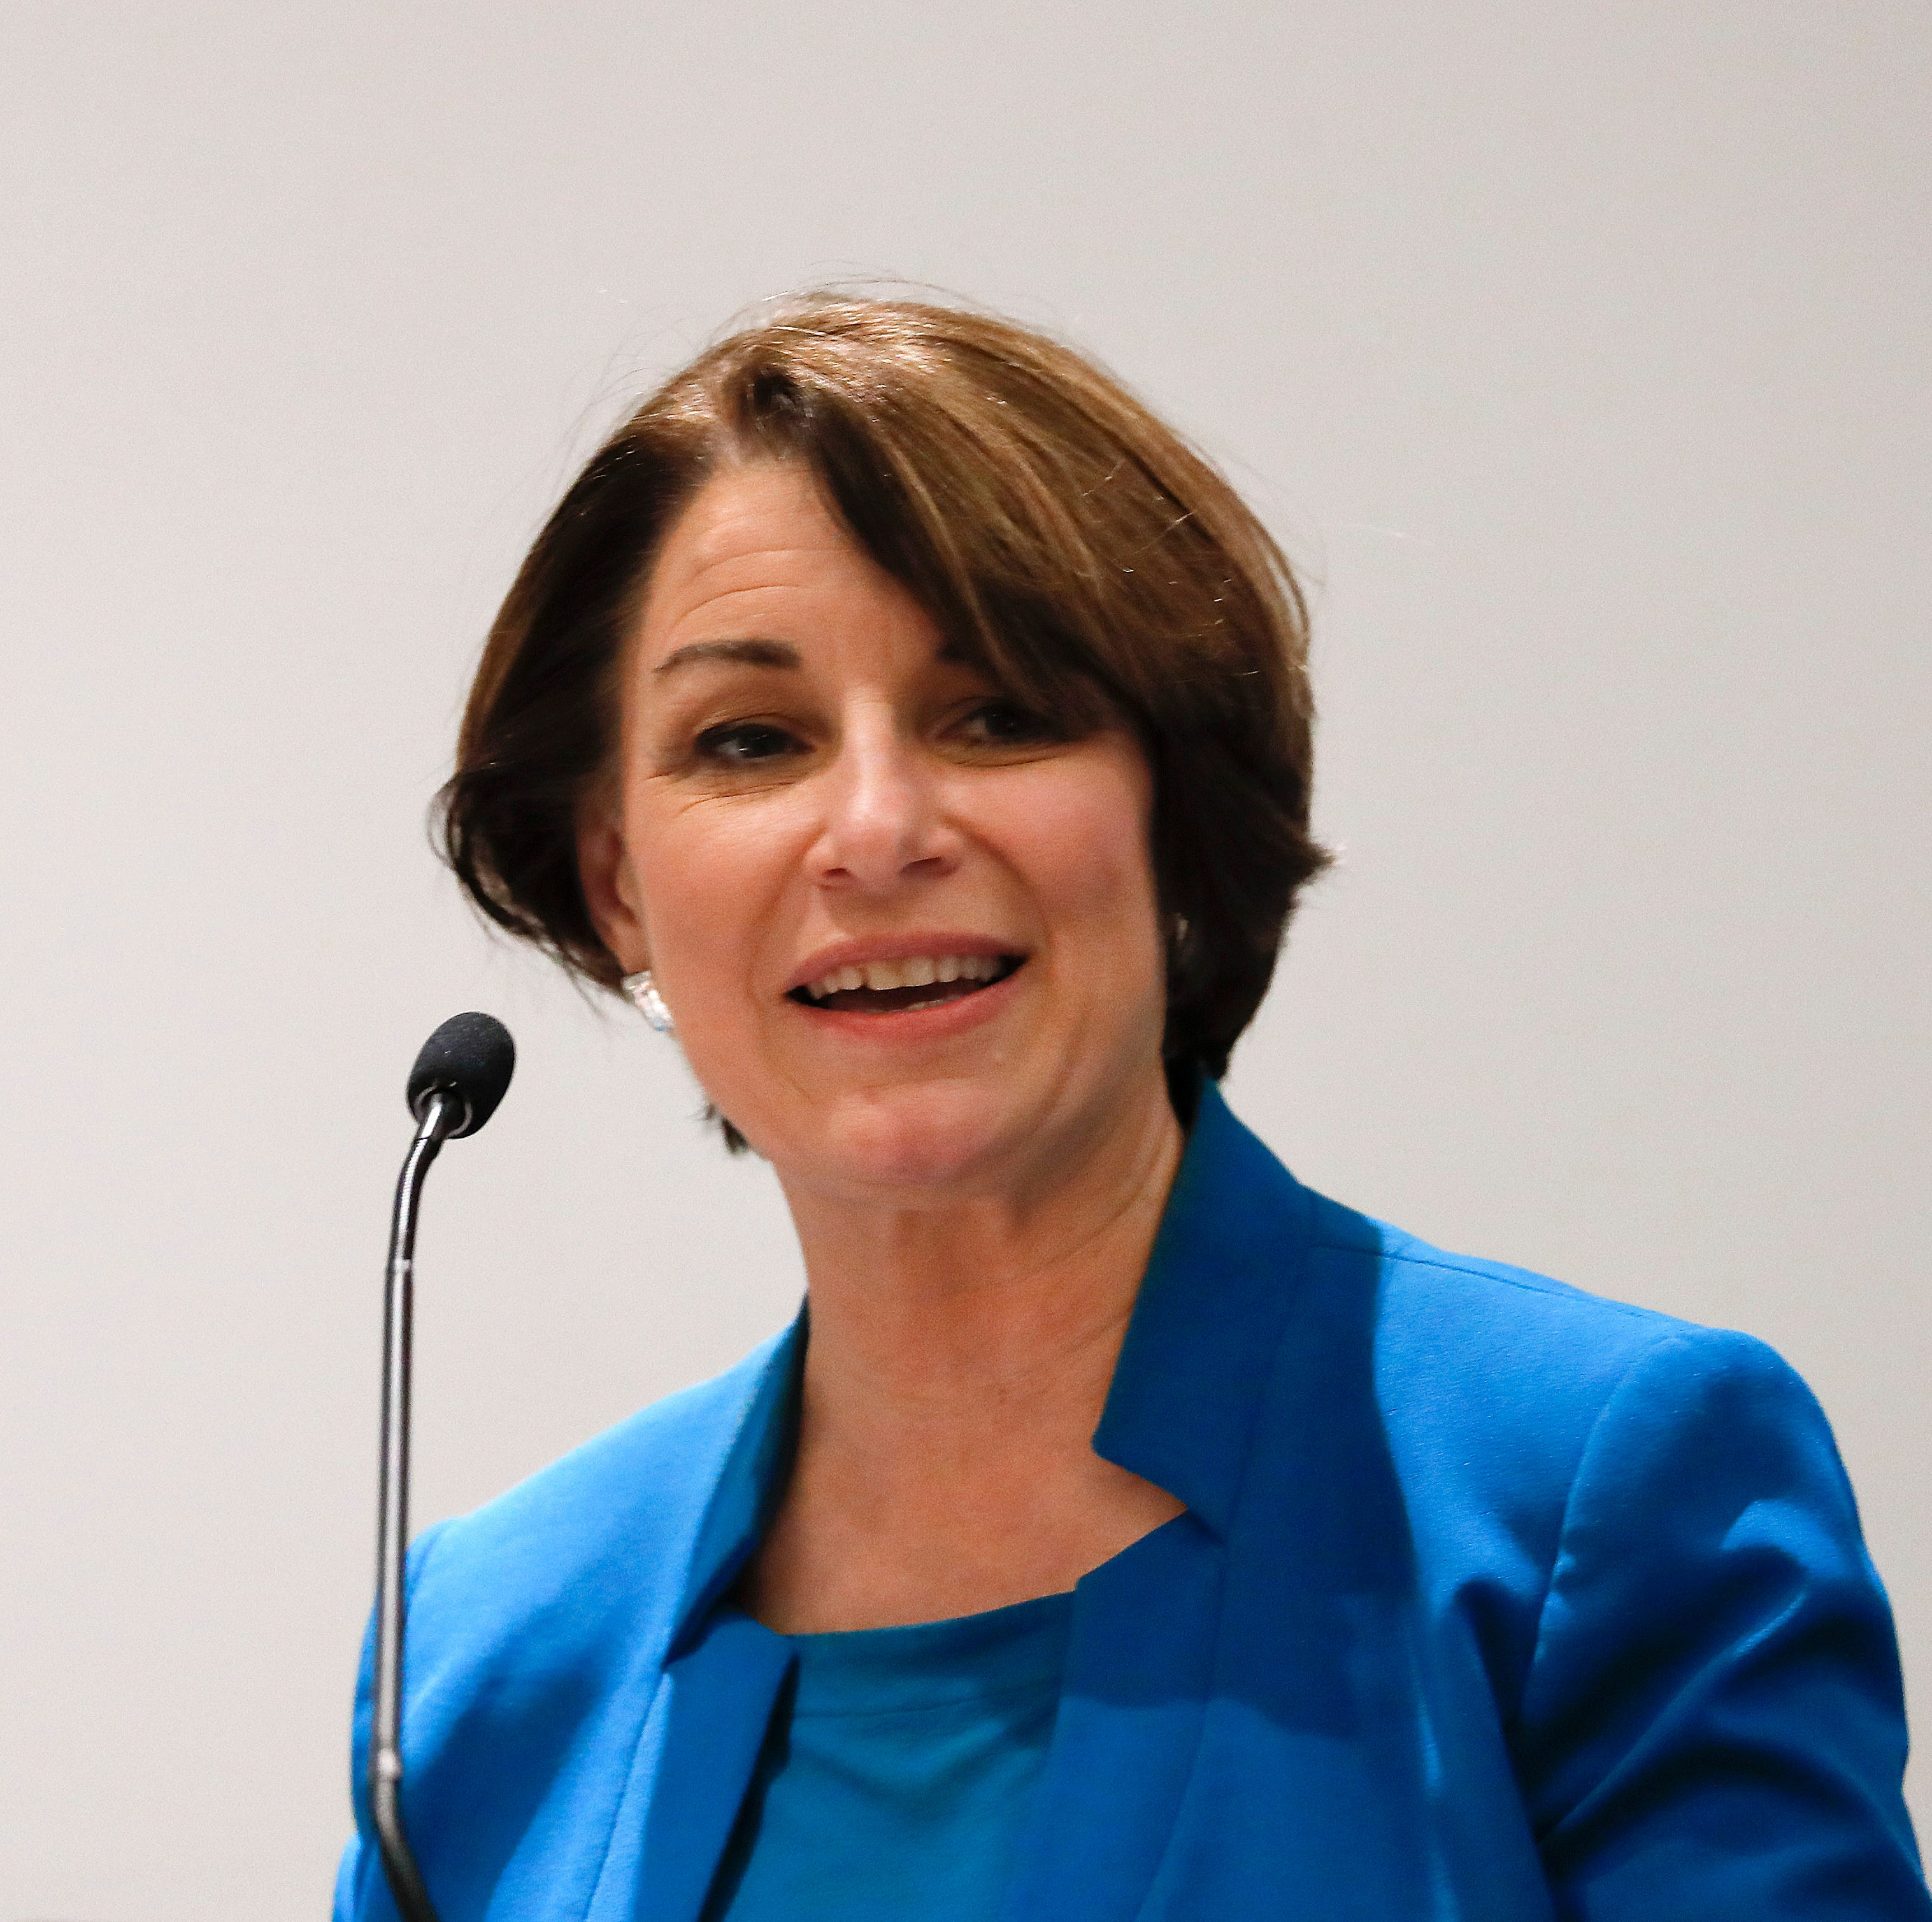 Michigan is key to taking back White House, says Sen. Amy Klobuchar in Detroit